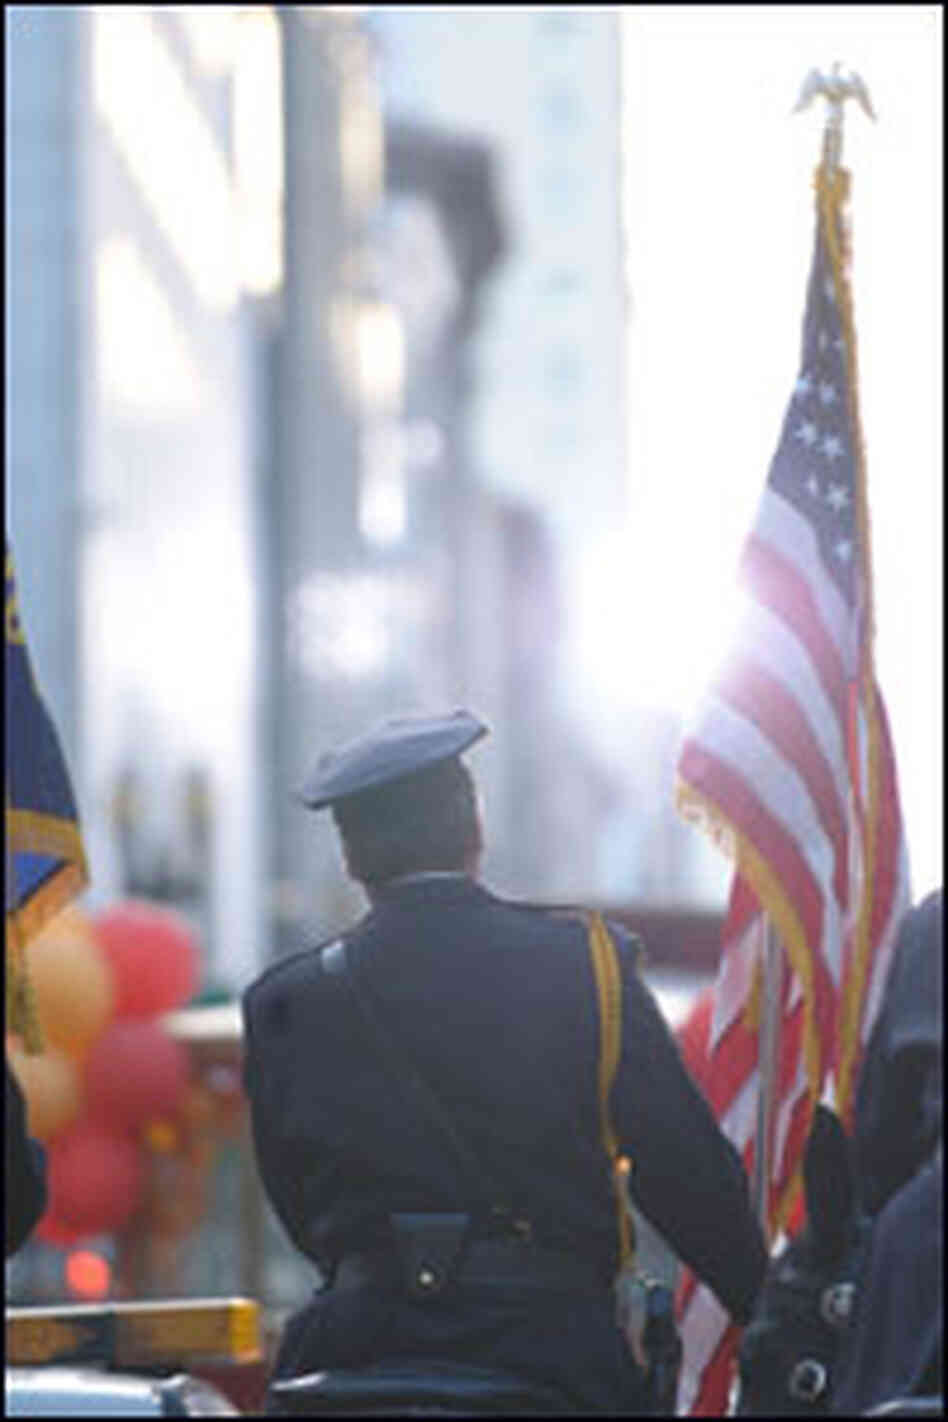 A policeman holds an American flag in a parade.